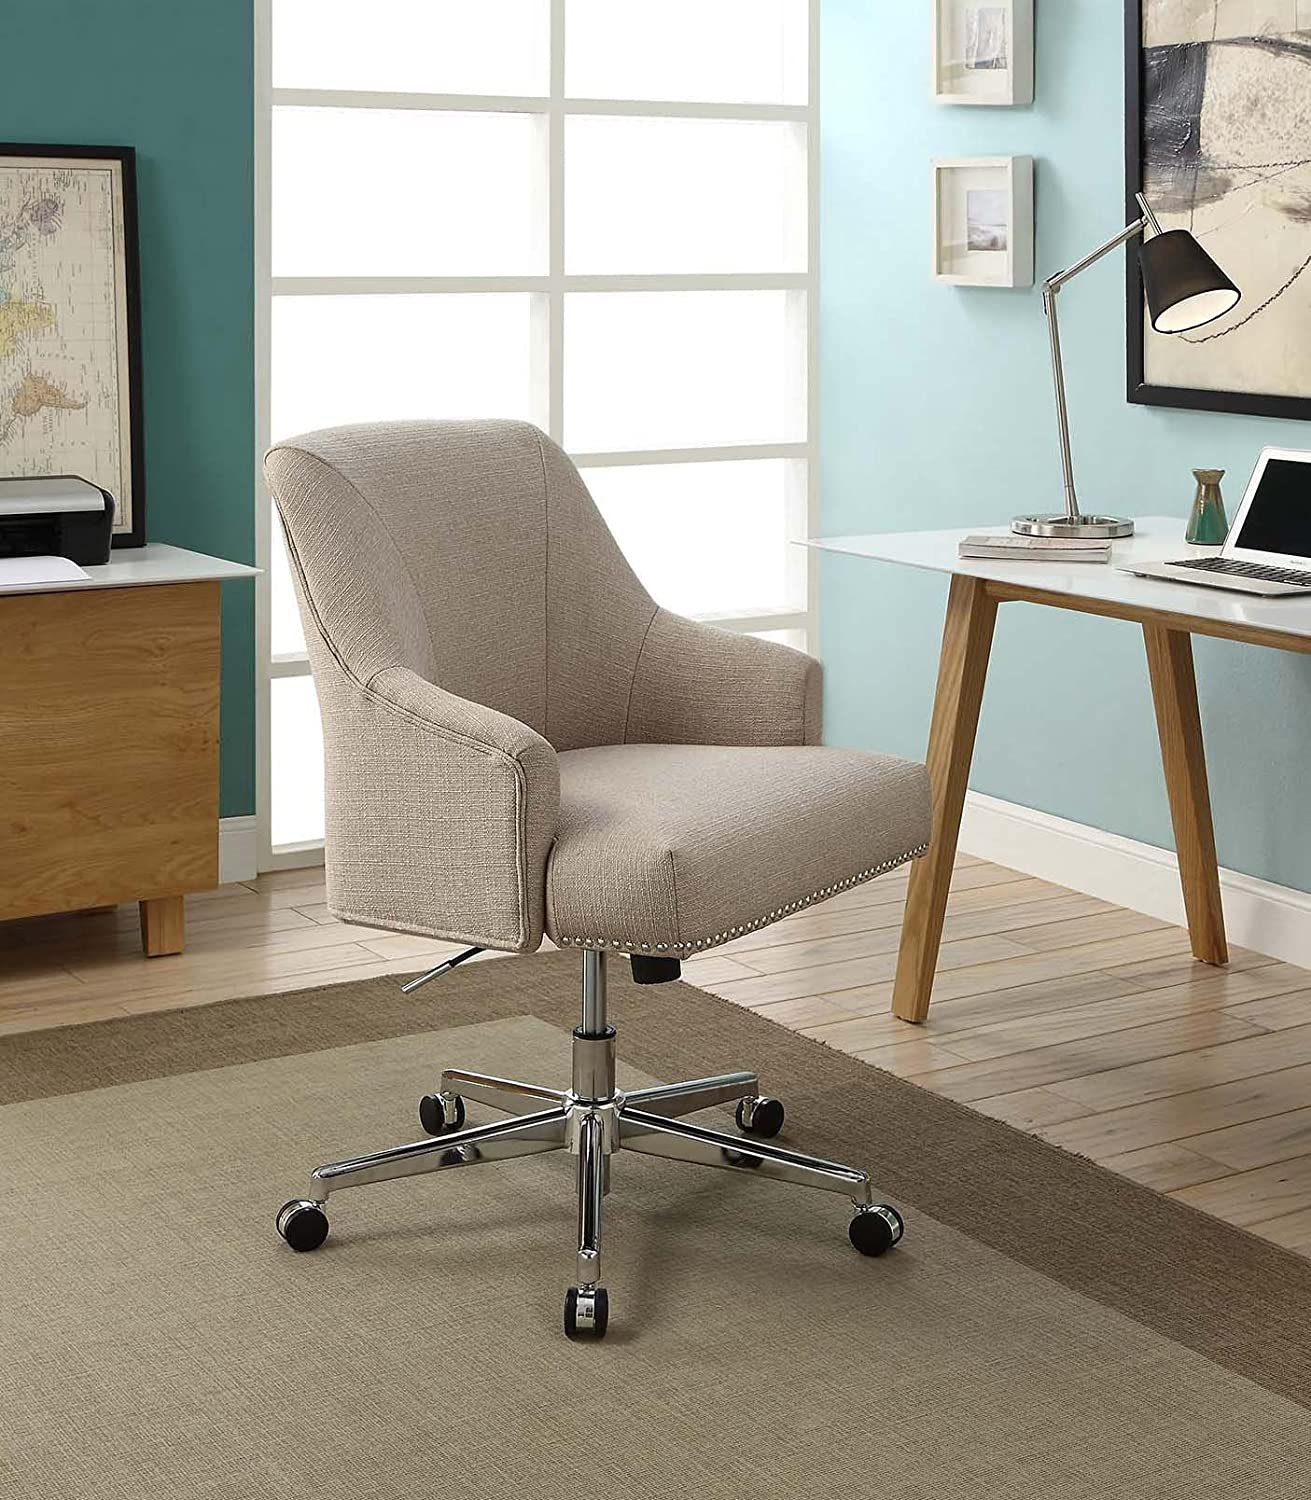 Serta Style Leighton Home Office Chair, Twill Fabric, Beige